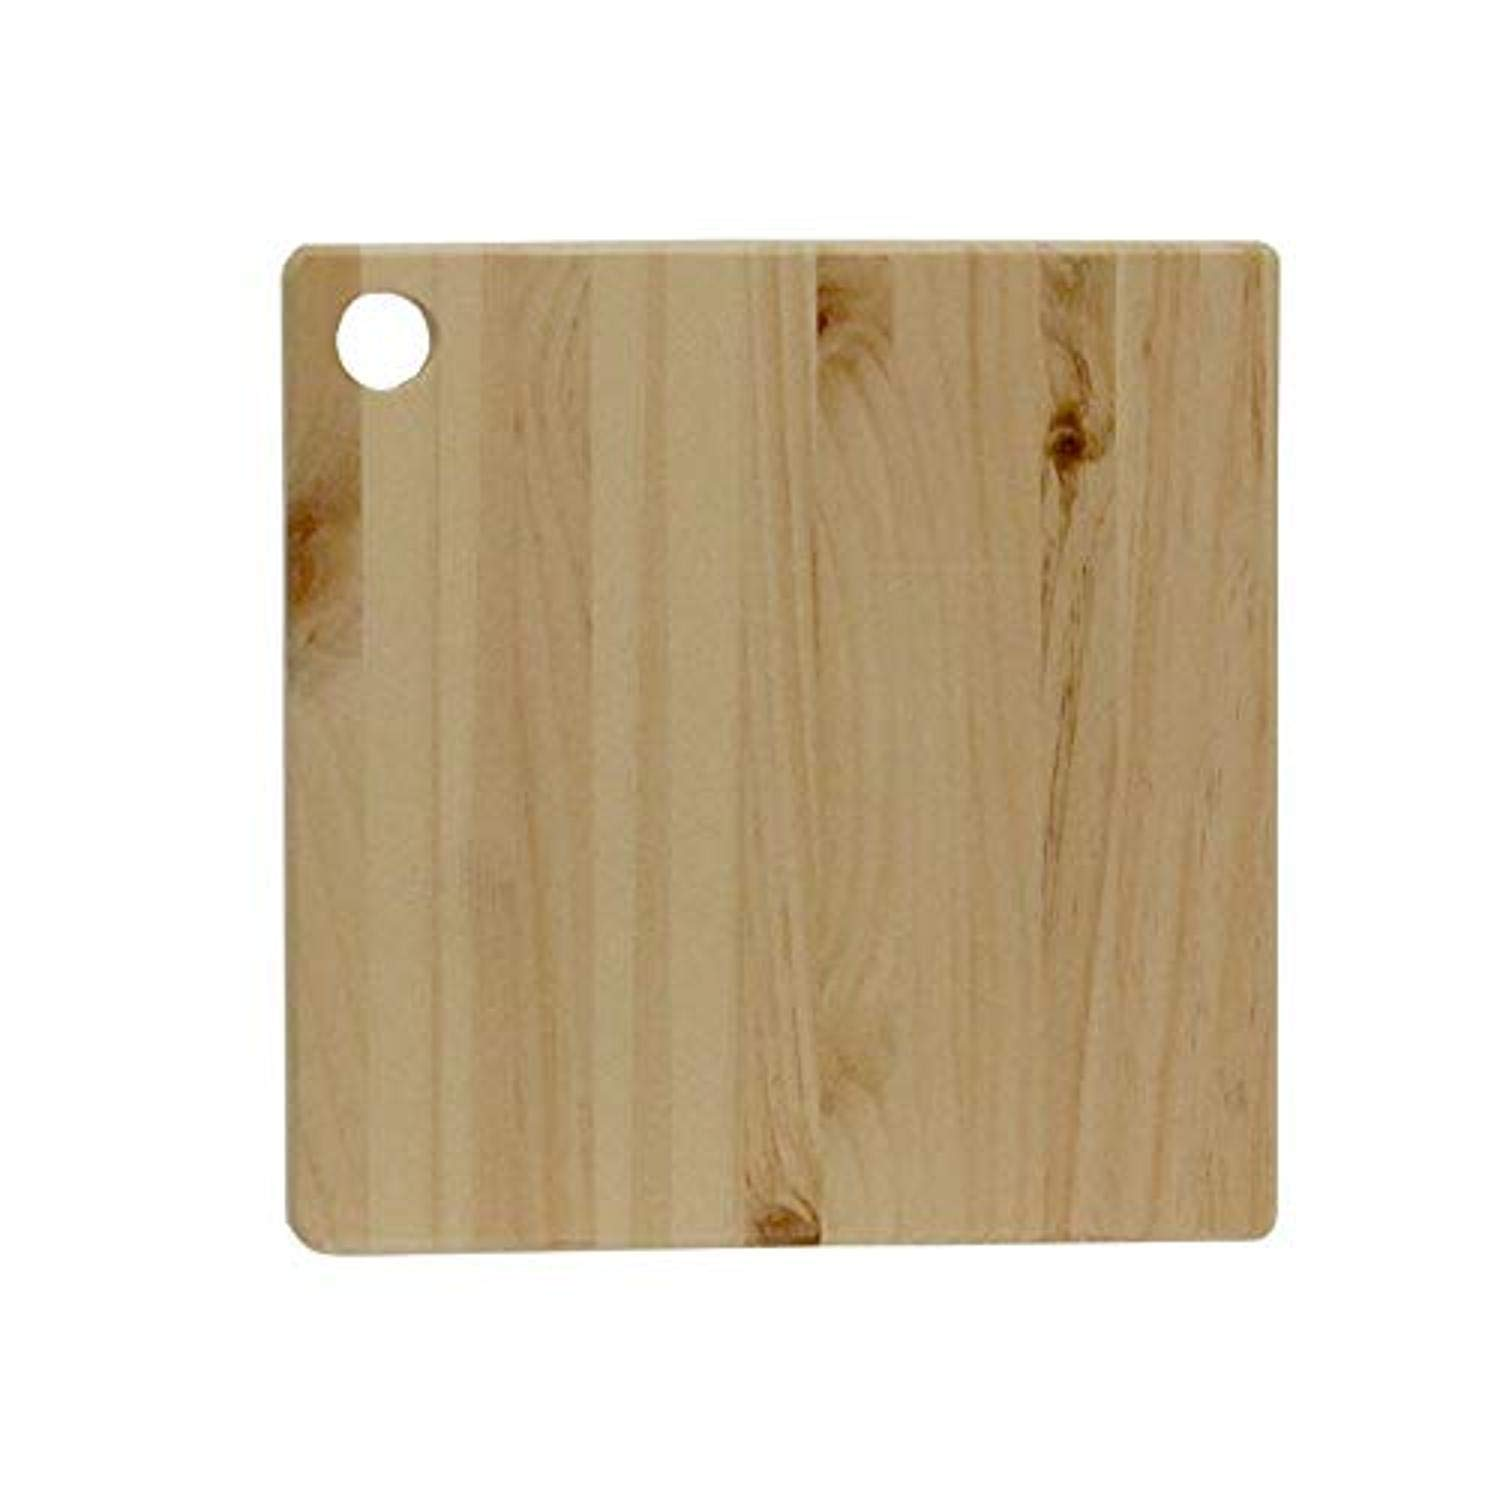 Circle Walnut Hollow Unfinished Pine Serving Board for Arts /& Crafts Display